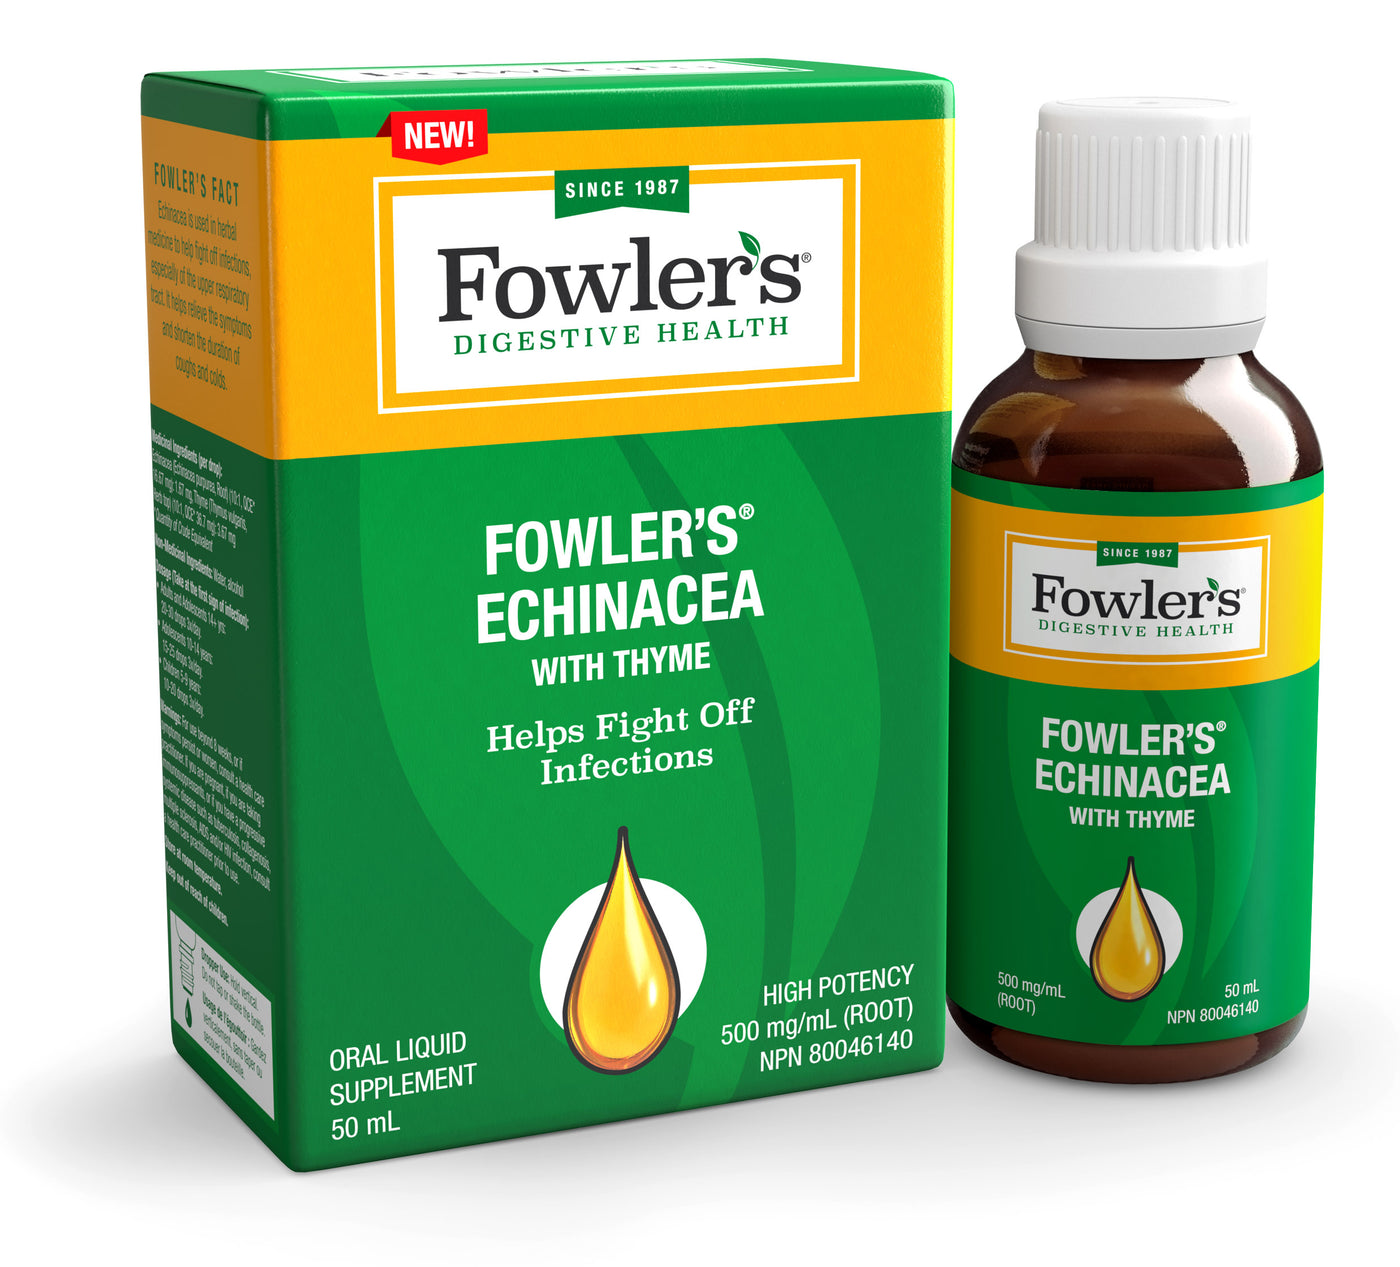 Fowler's Echinacea with Thyme (Extra-Strength 500 mg/mL)<br><b>Special Sale: $12.95*</b>